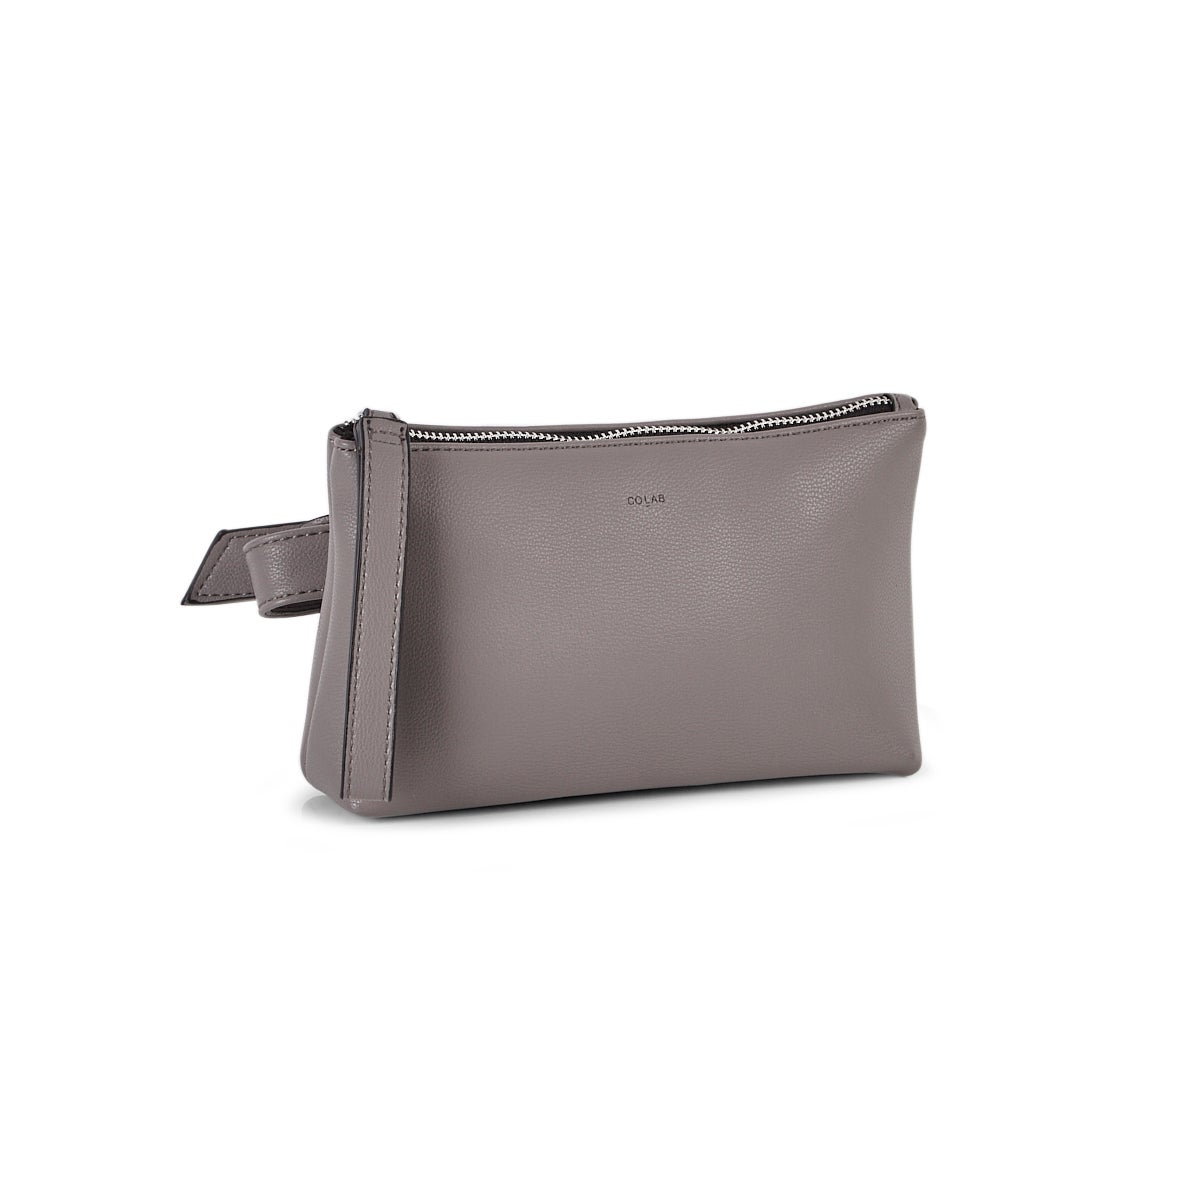 Lds Pebble 2.0 smoke crossbody belt bag